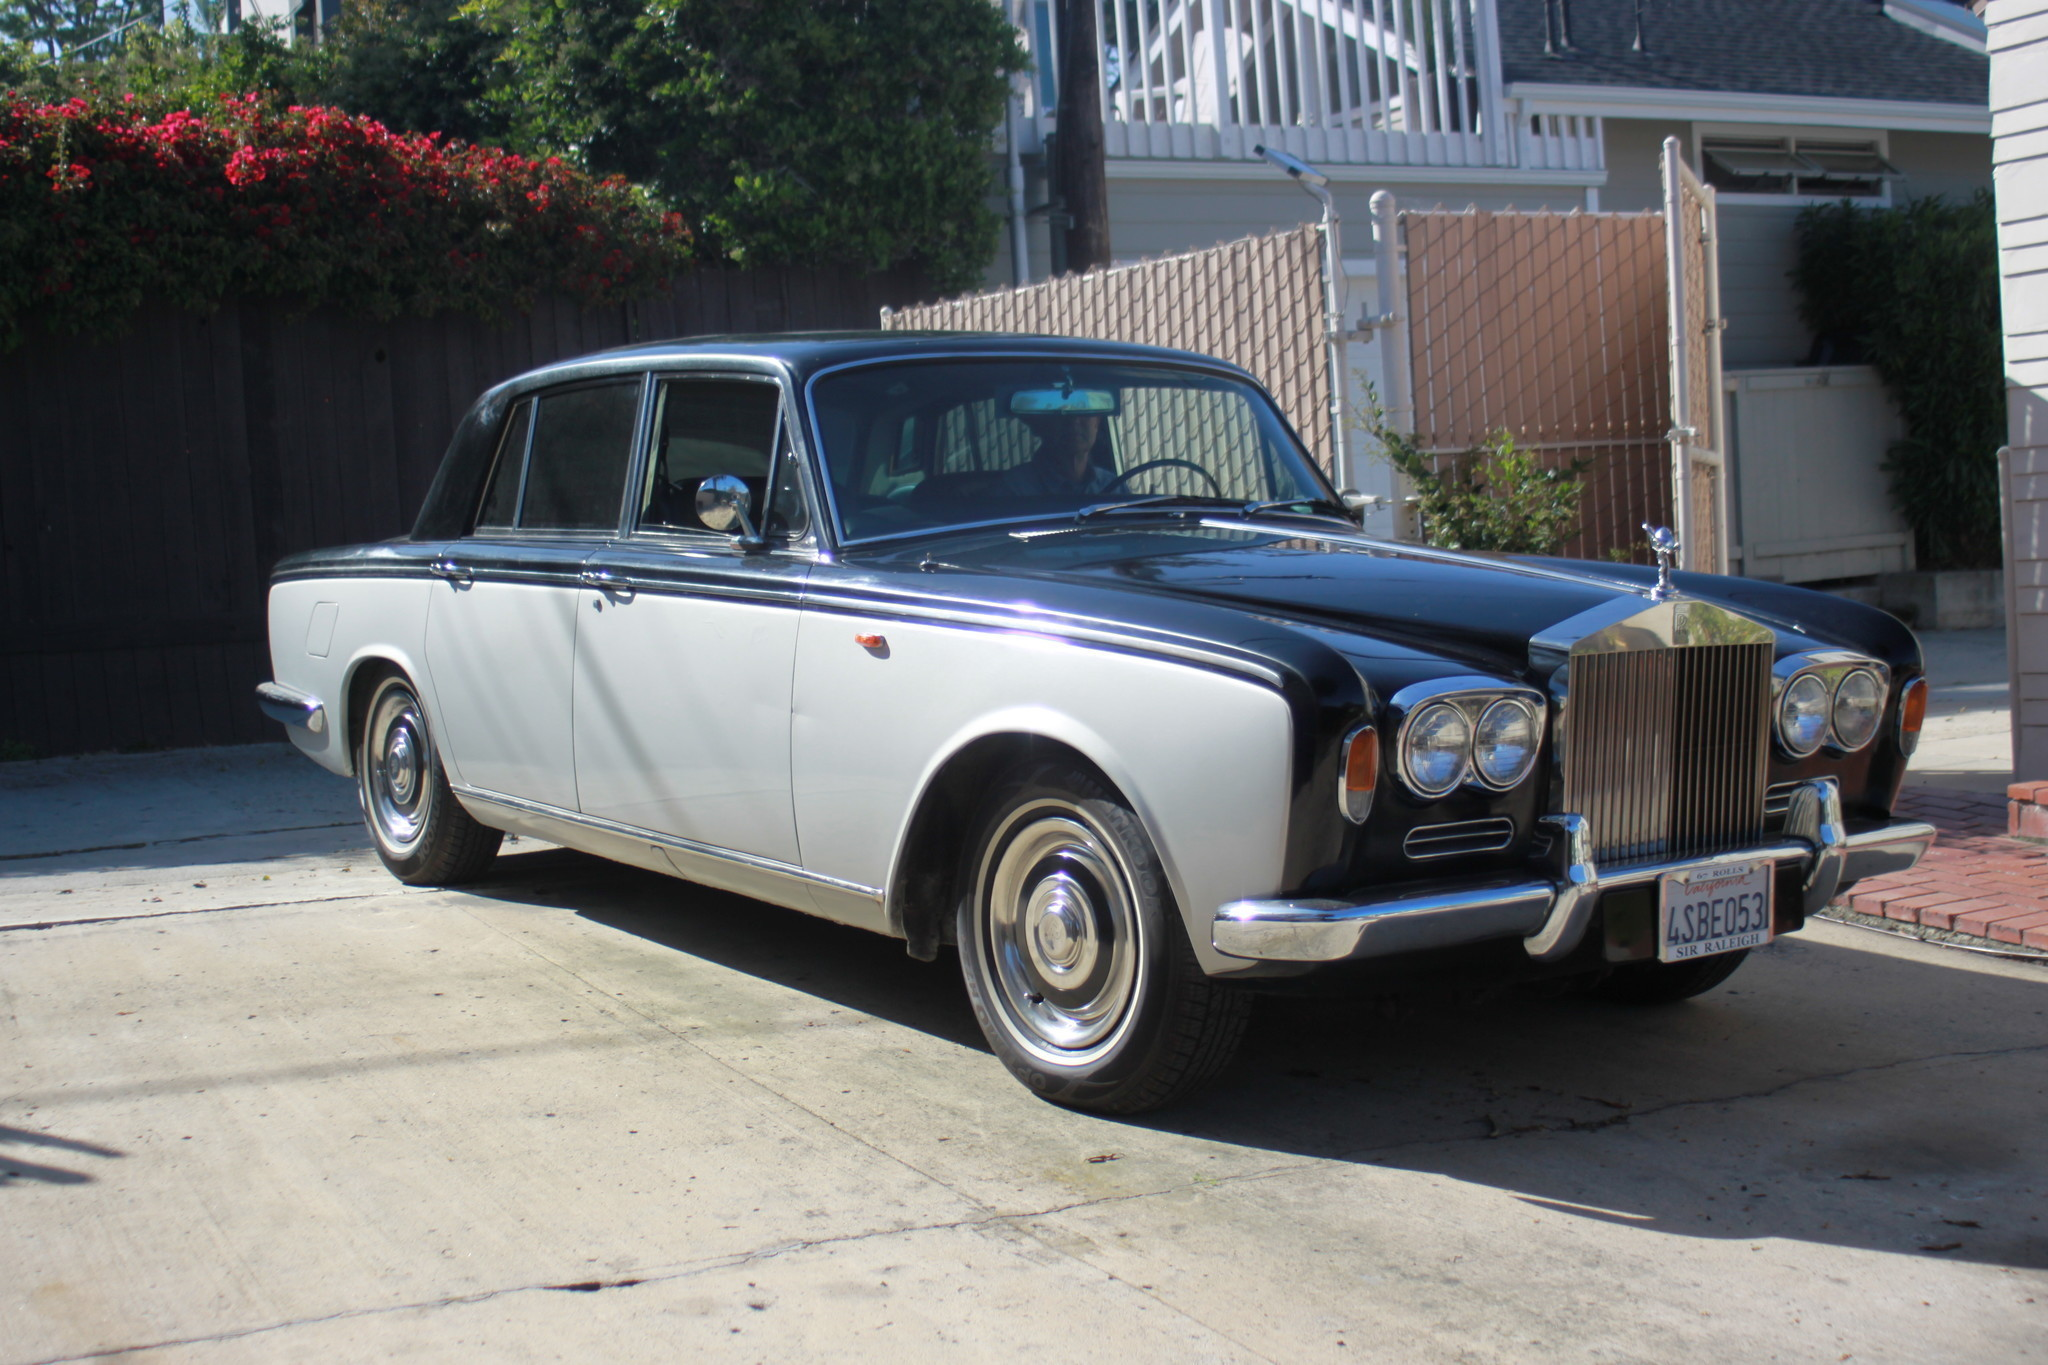 Meet Sir Raleigh The 1967 Rolls Royce Owned By Ed